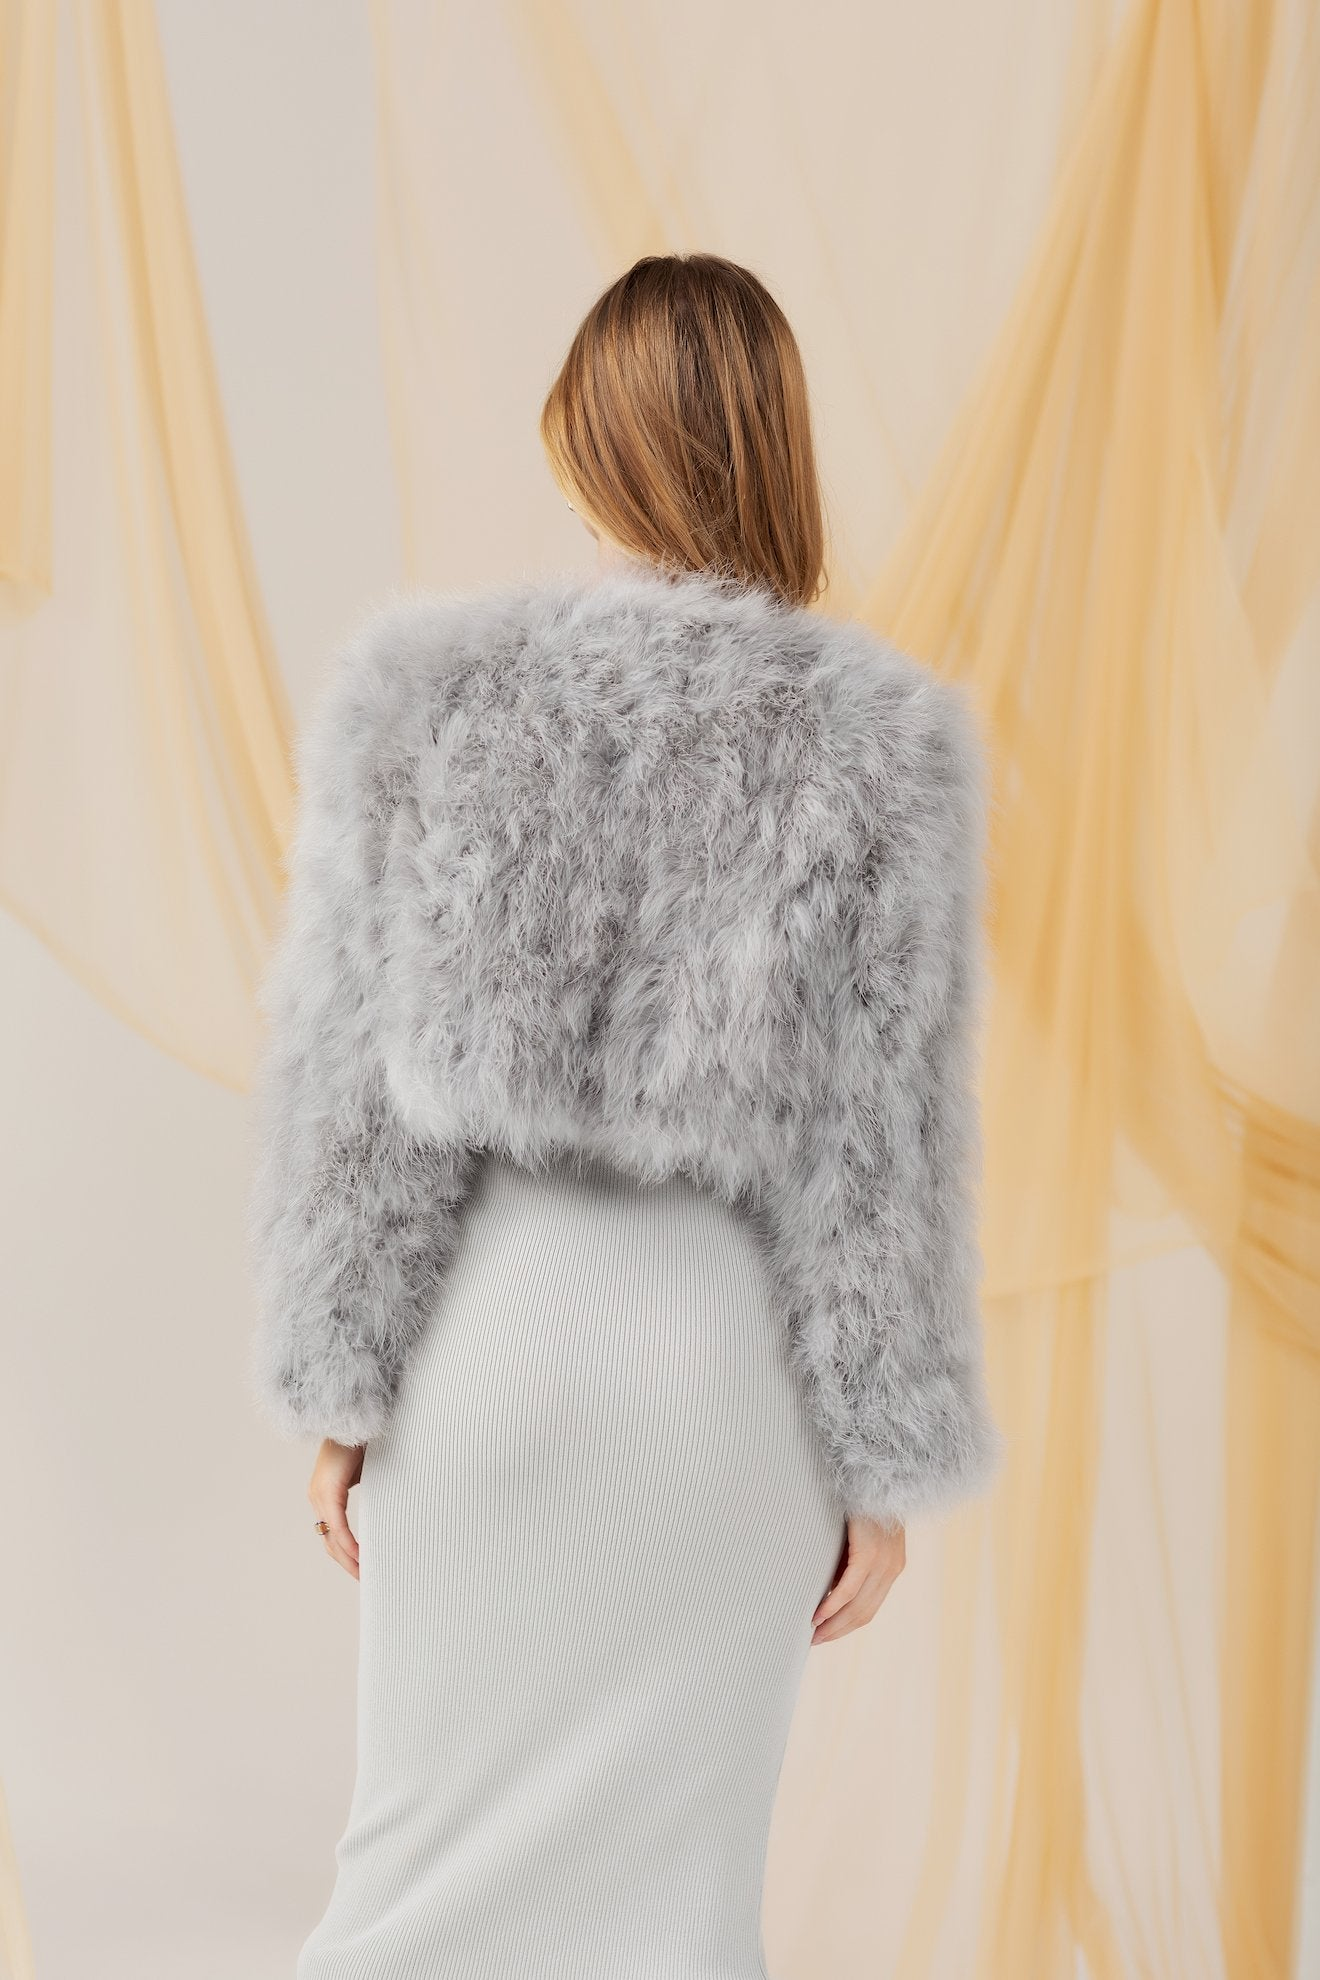 Manhattan Feather Jacket - Light Grey Cropped Jacket Bubish Luxe